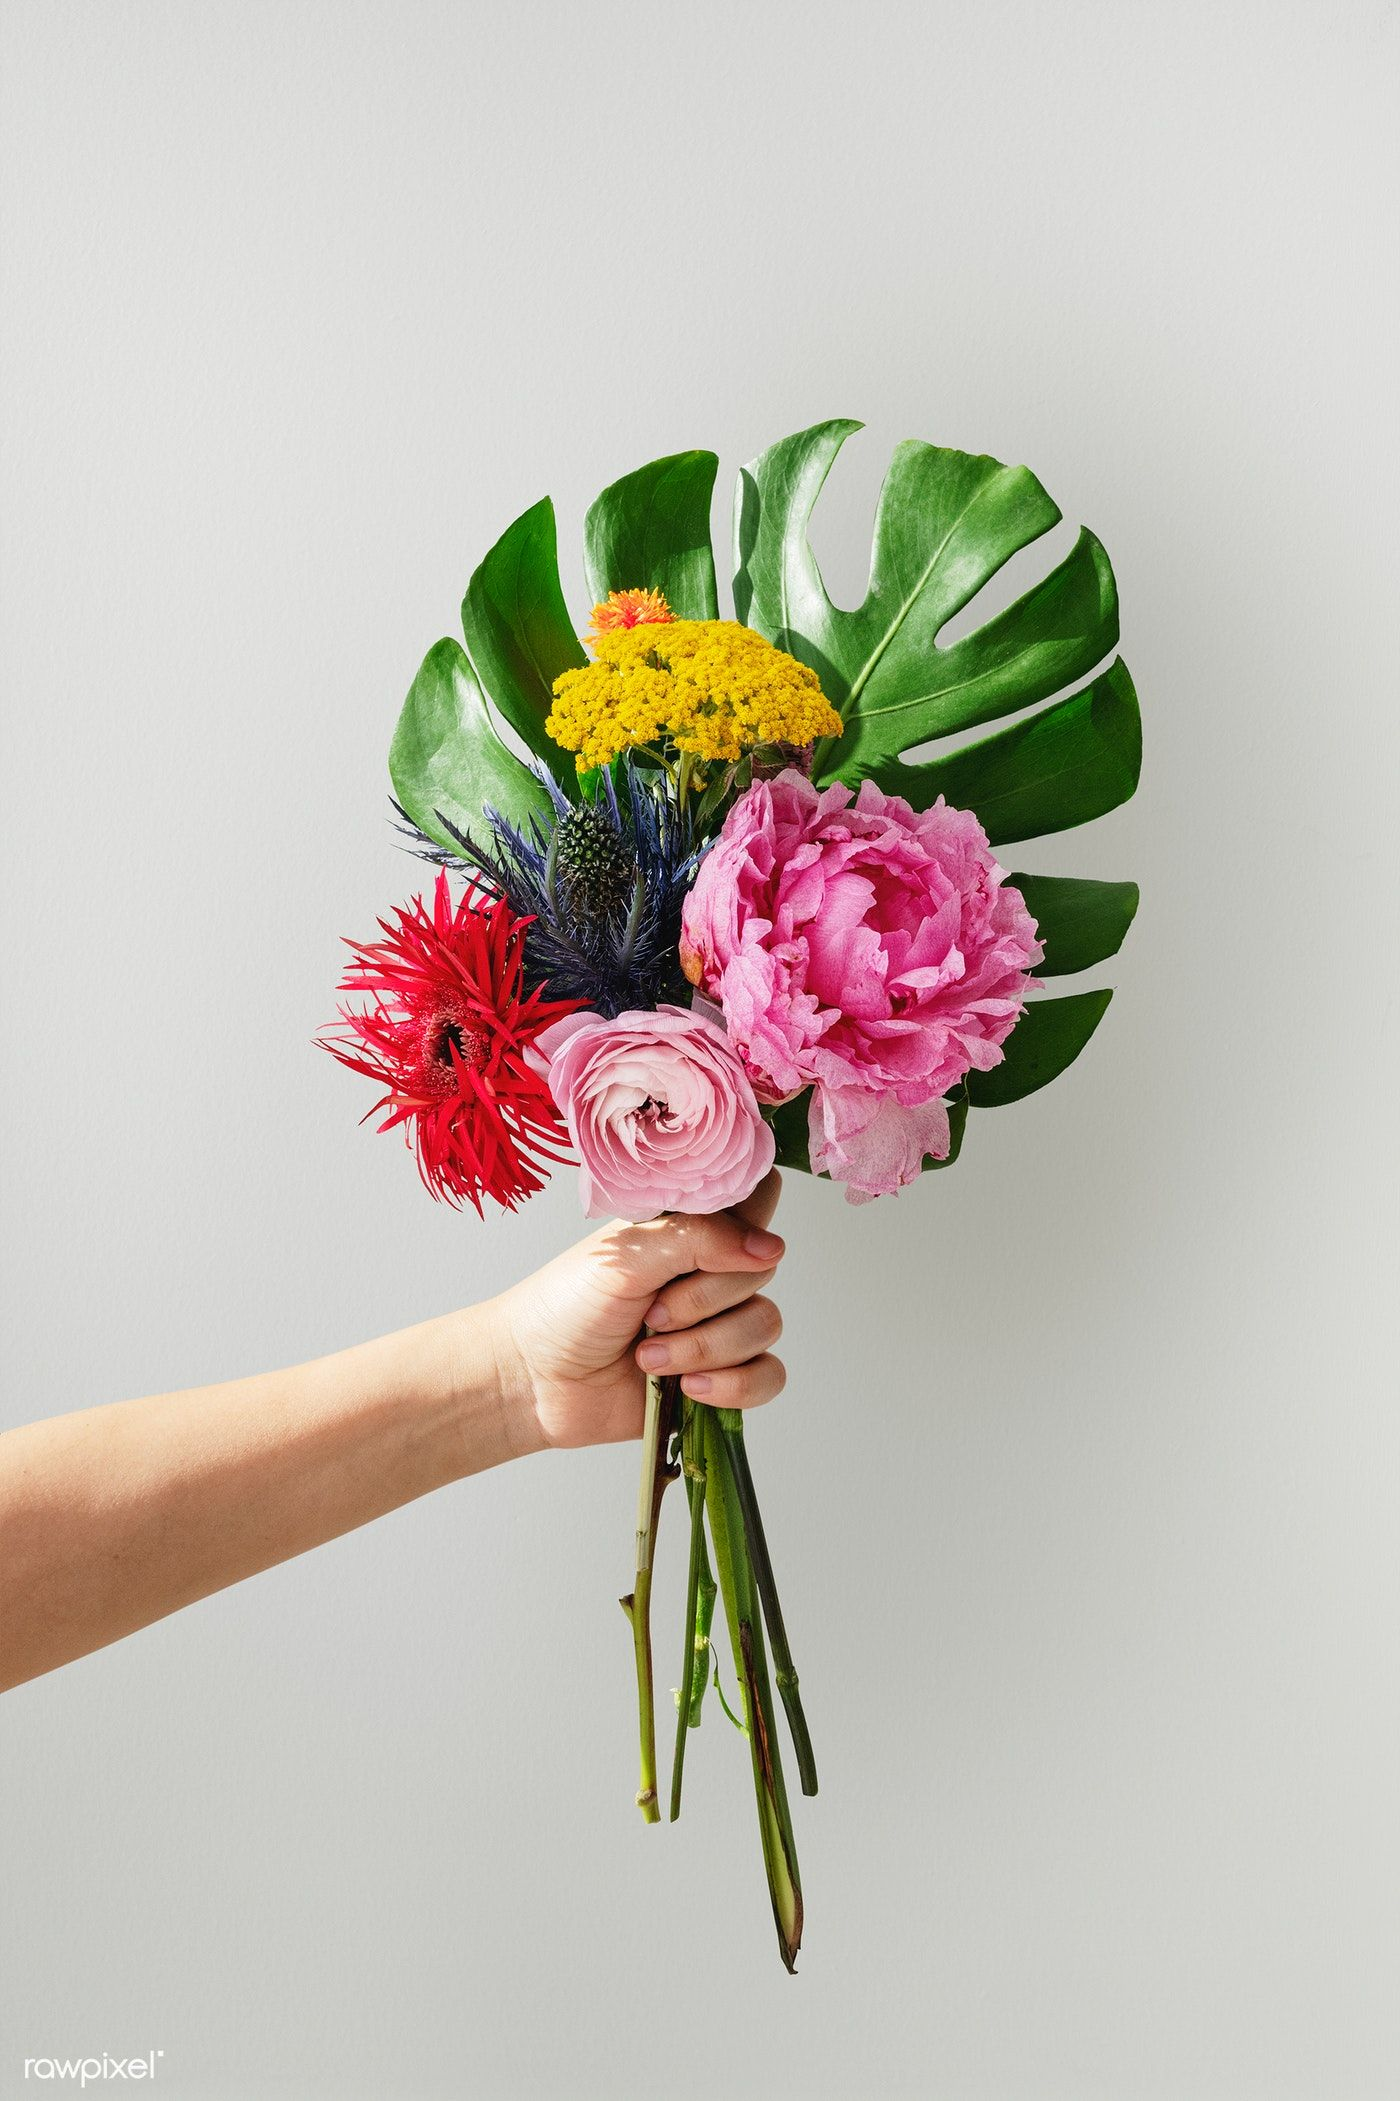 Woman Holding Up A Tropical Flower Bouquet Premium Image By Rawpixel Com Teddy Rawpi Tropical Flowers Bouquet Tropical Flower Arrangements Tropical Flowers